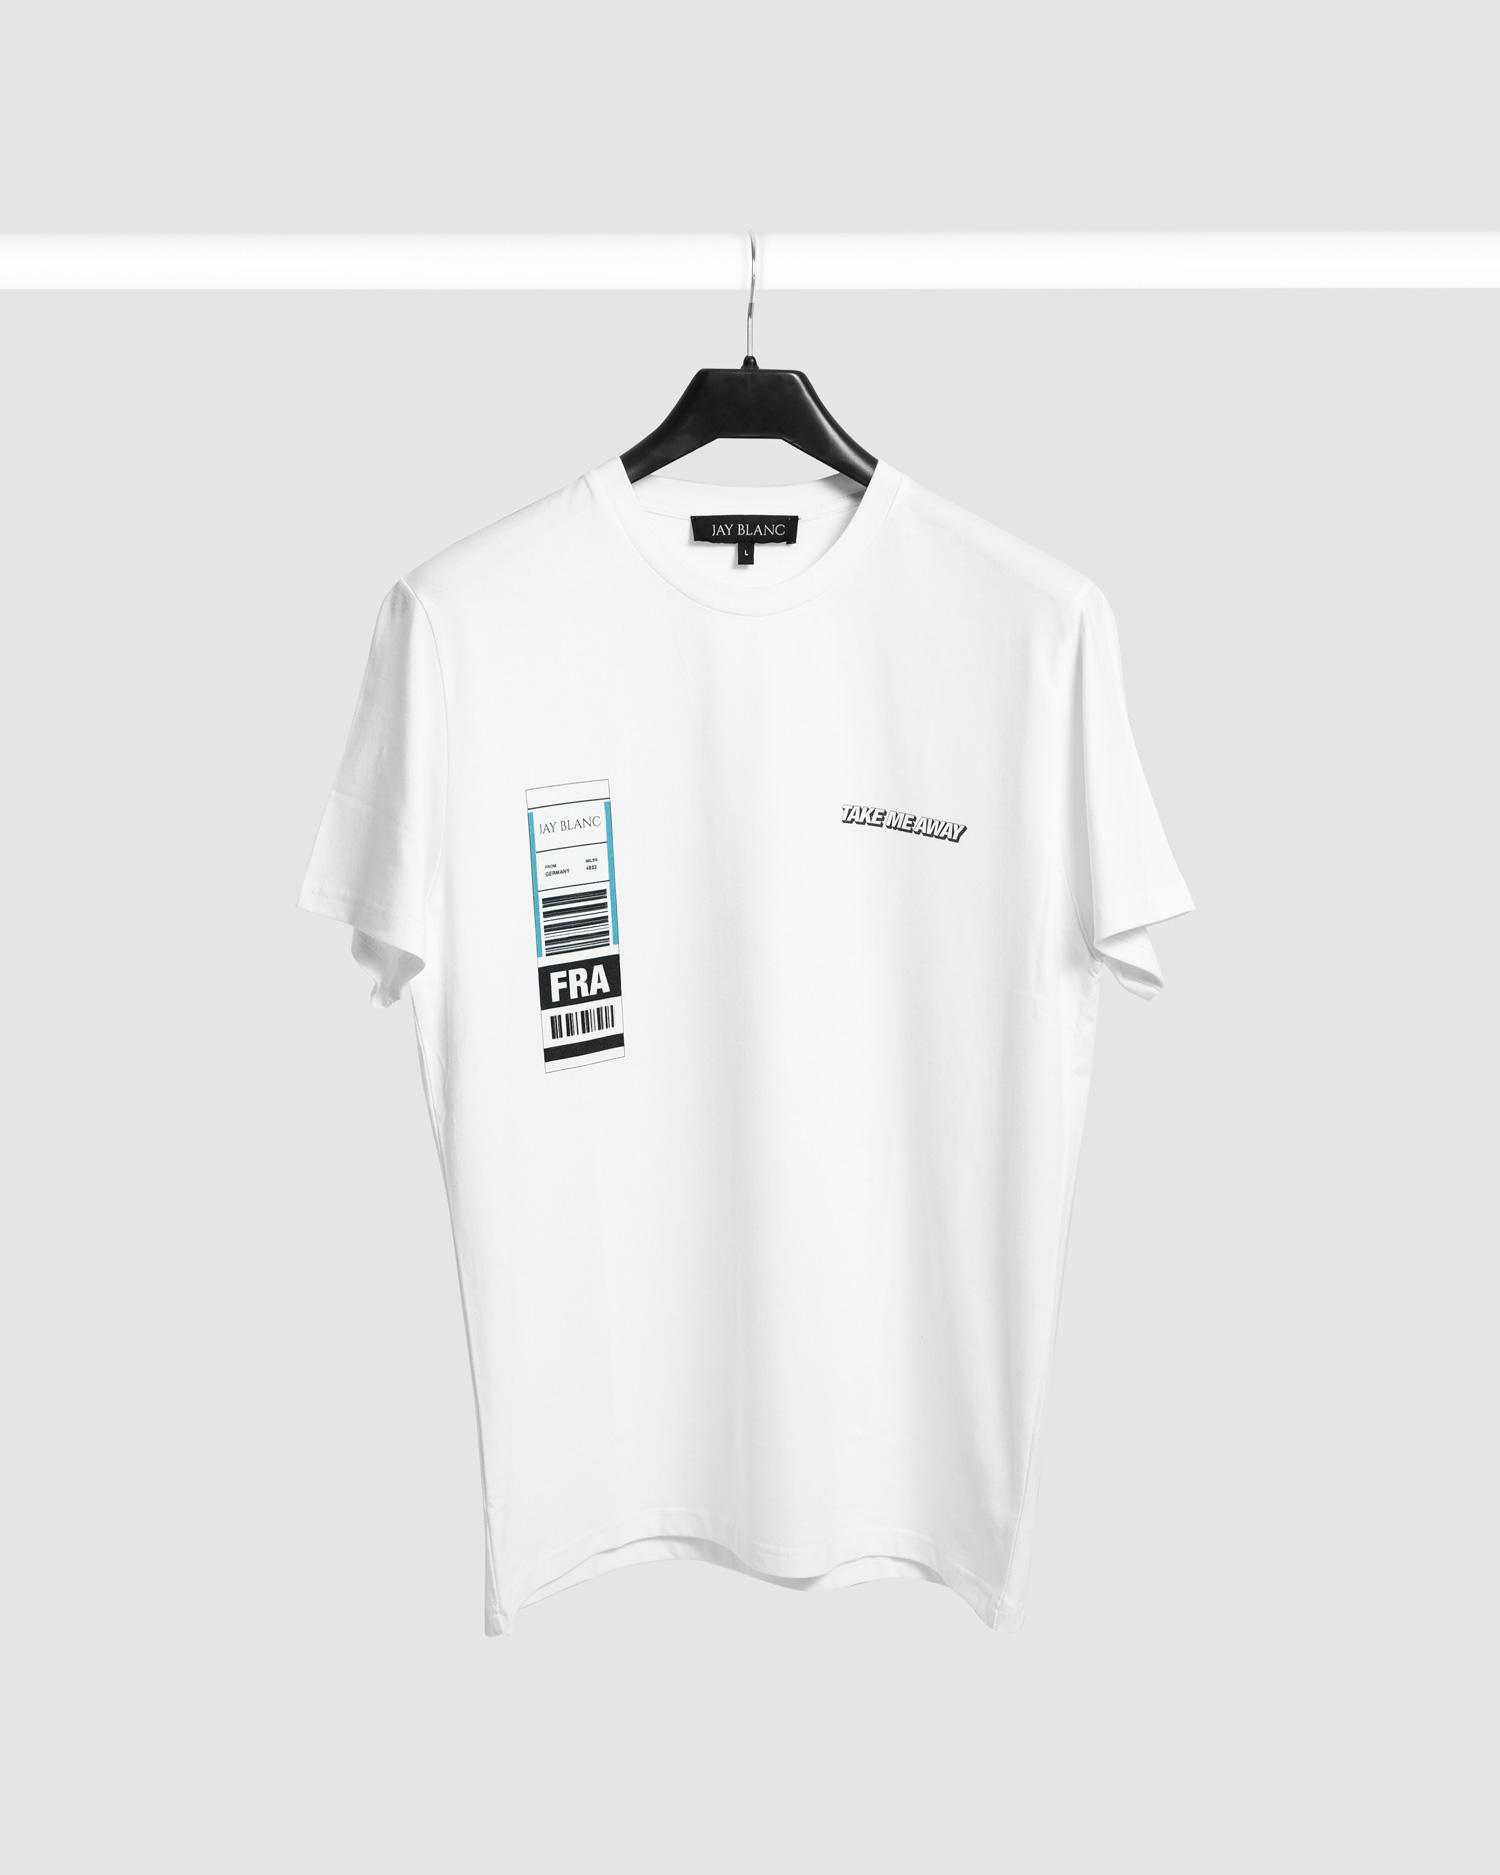 White T-Shirt with lugagge tag print and take me away quote